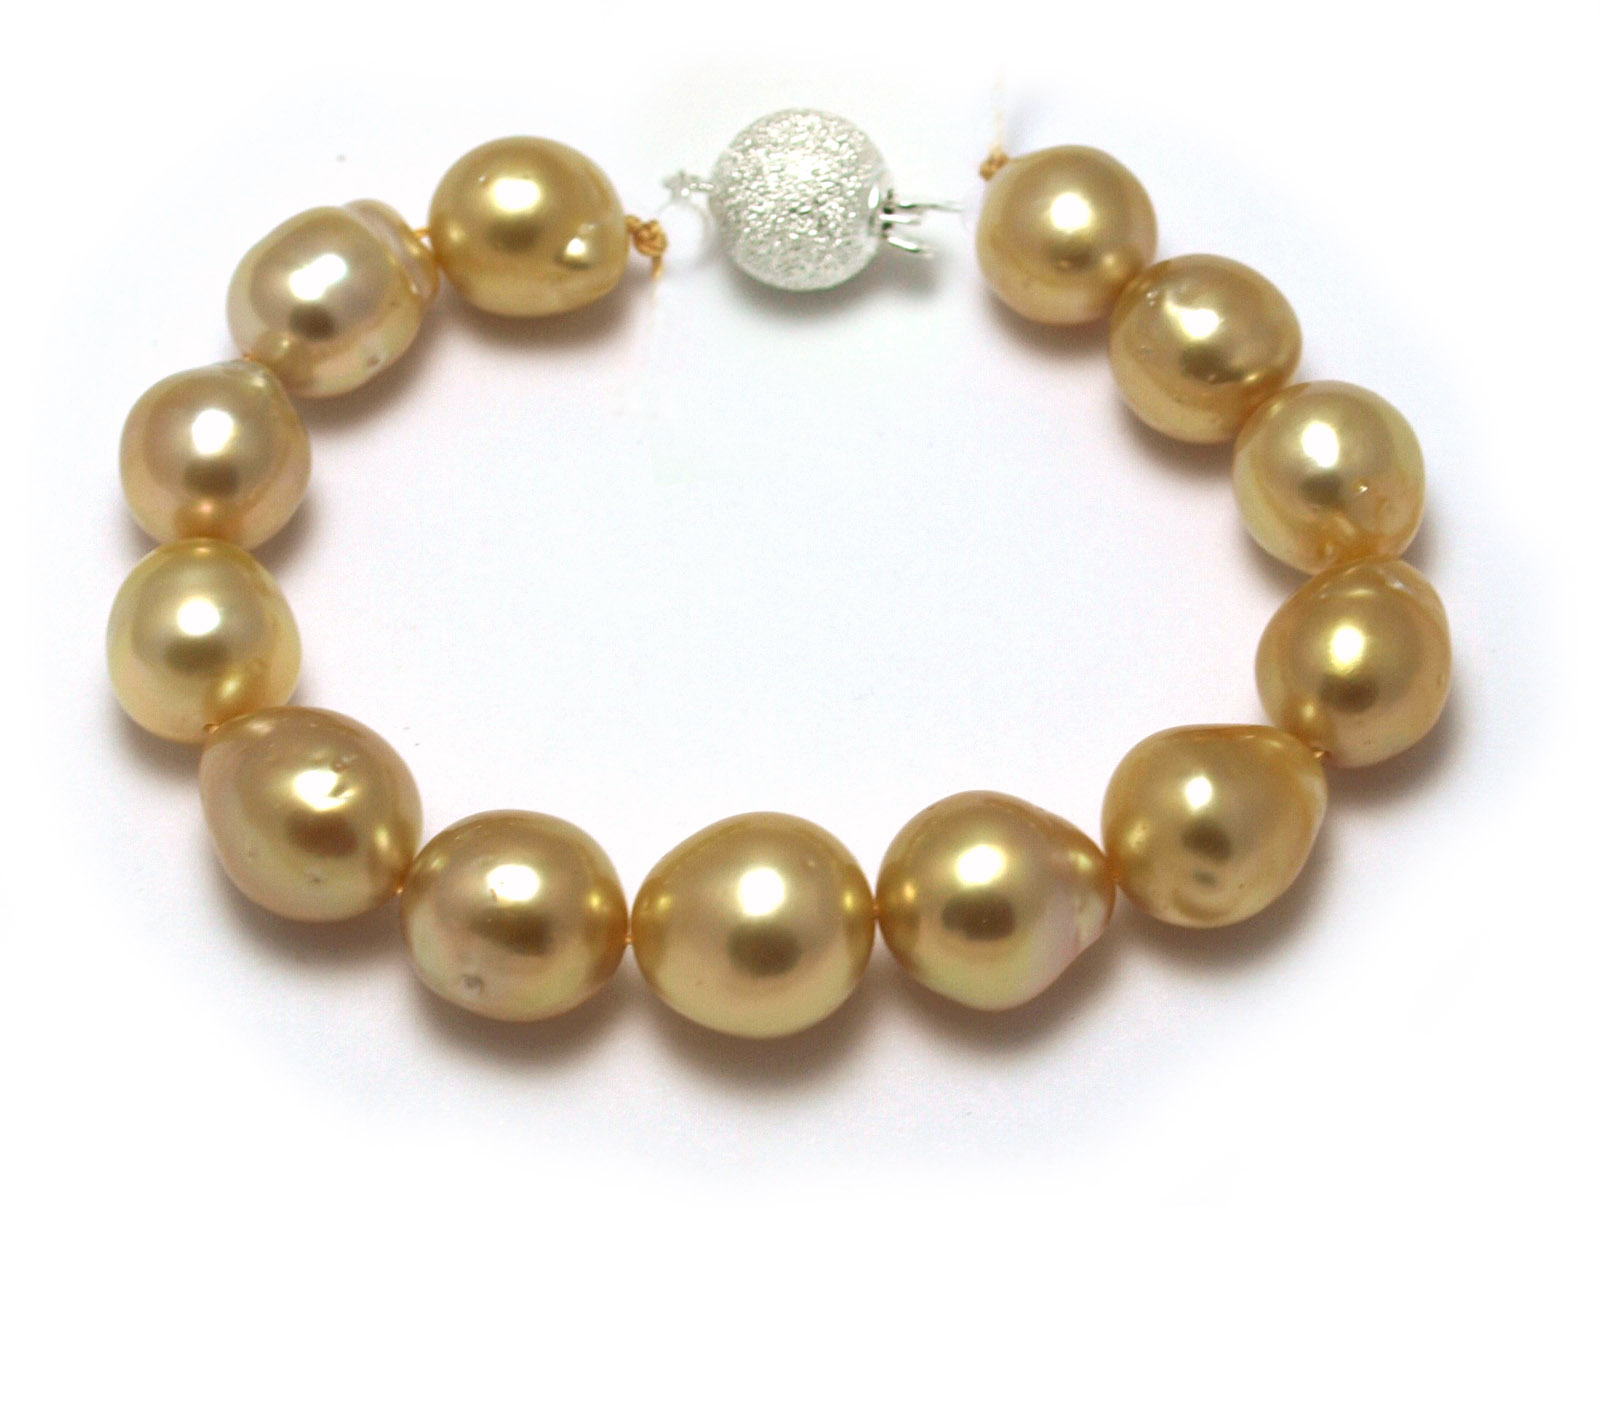 Bracelets with pearls : South sea gold pearl bracelet with deep golden baroque pearls